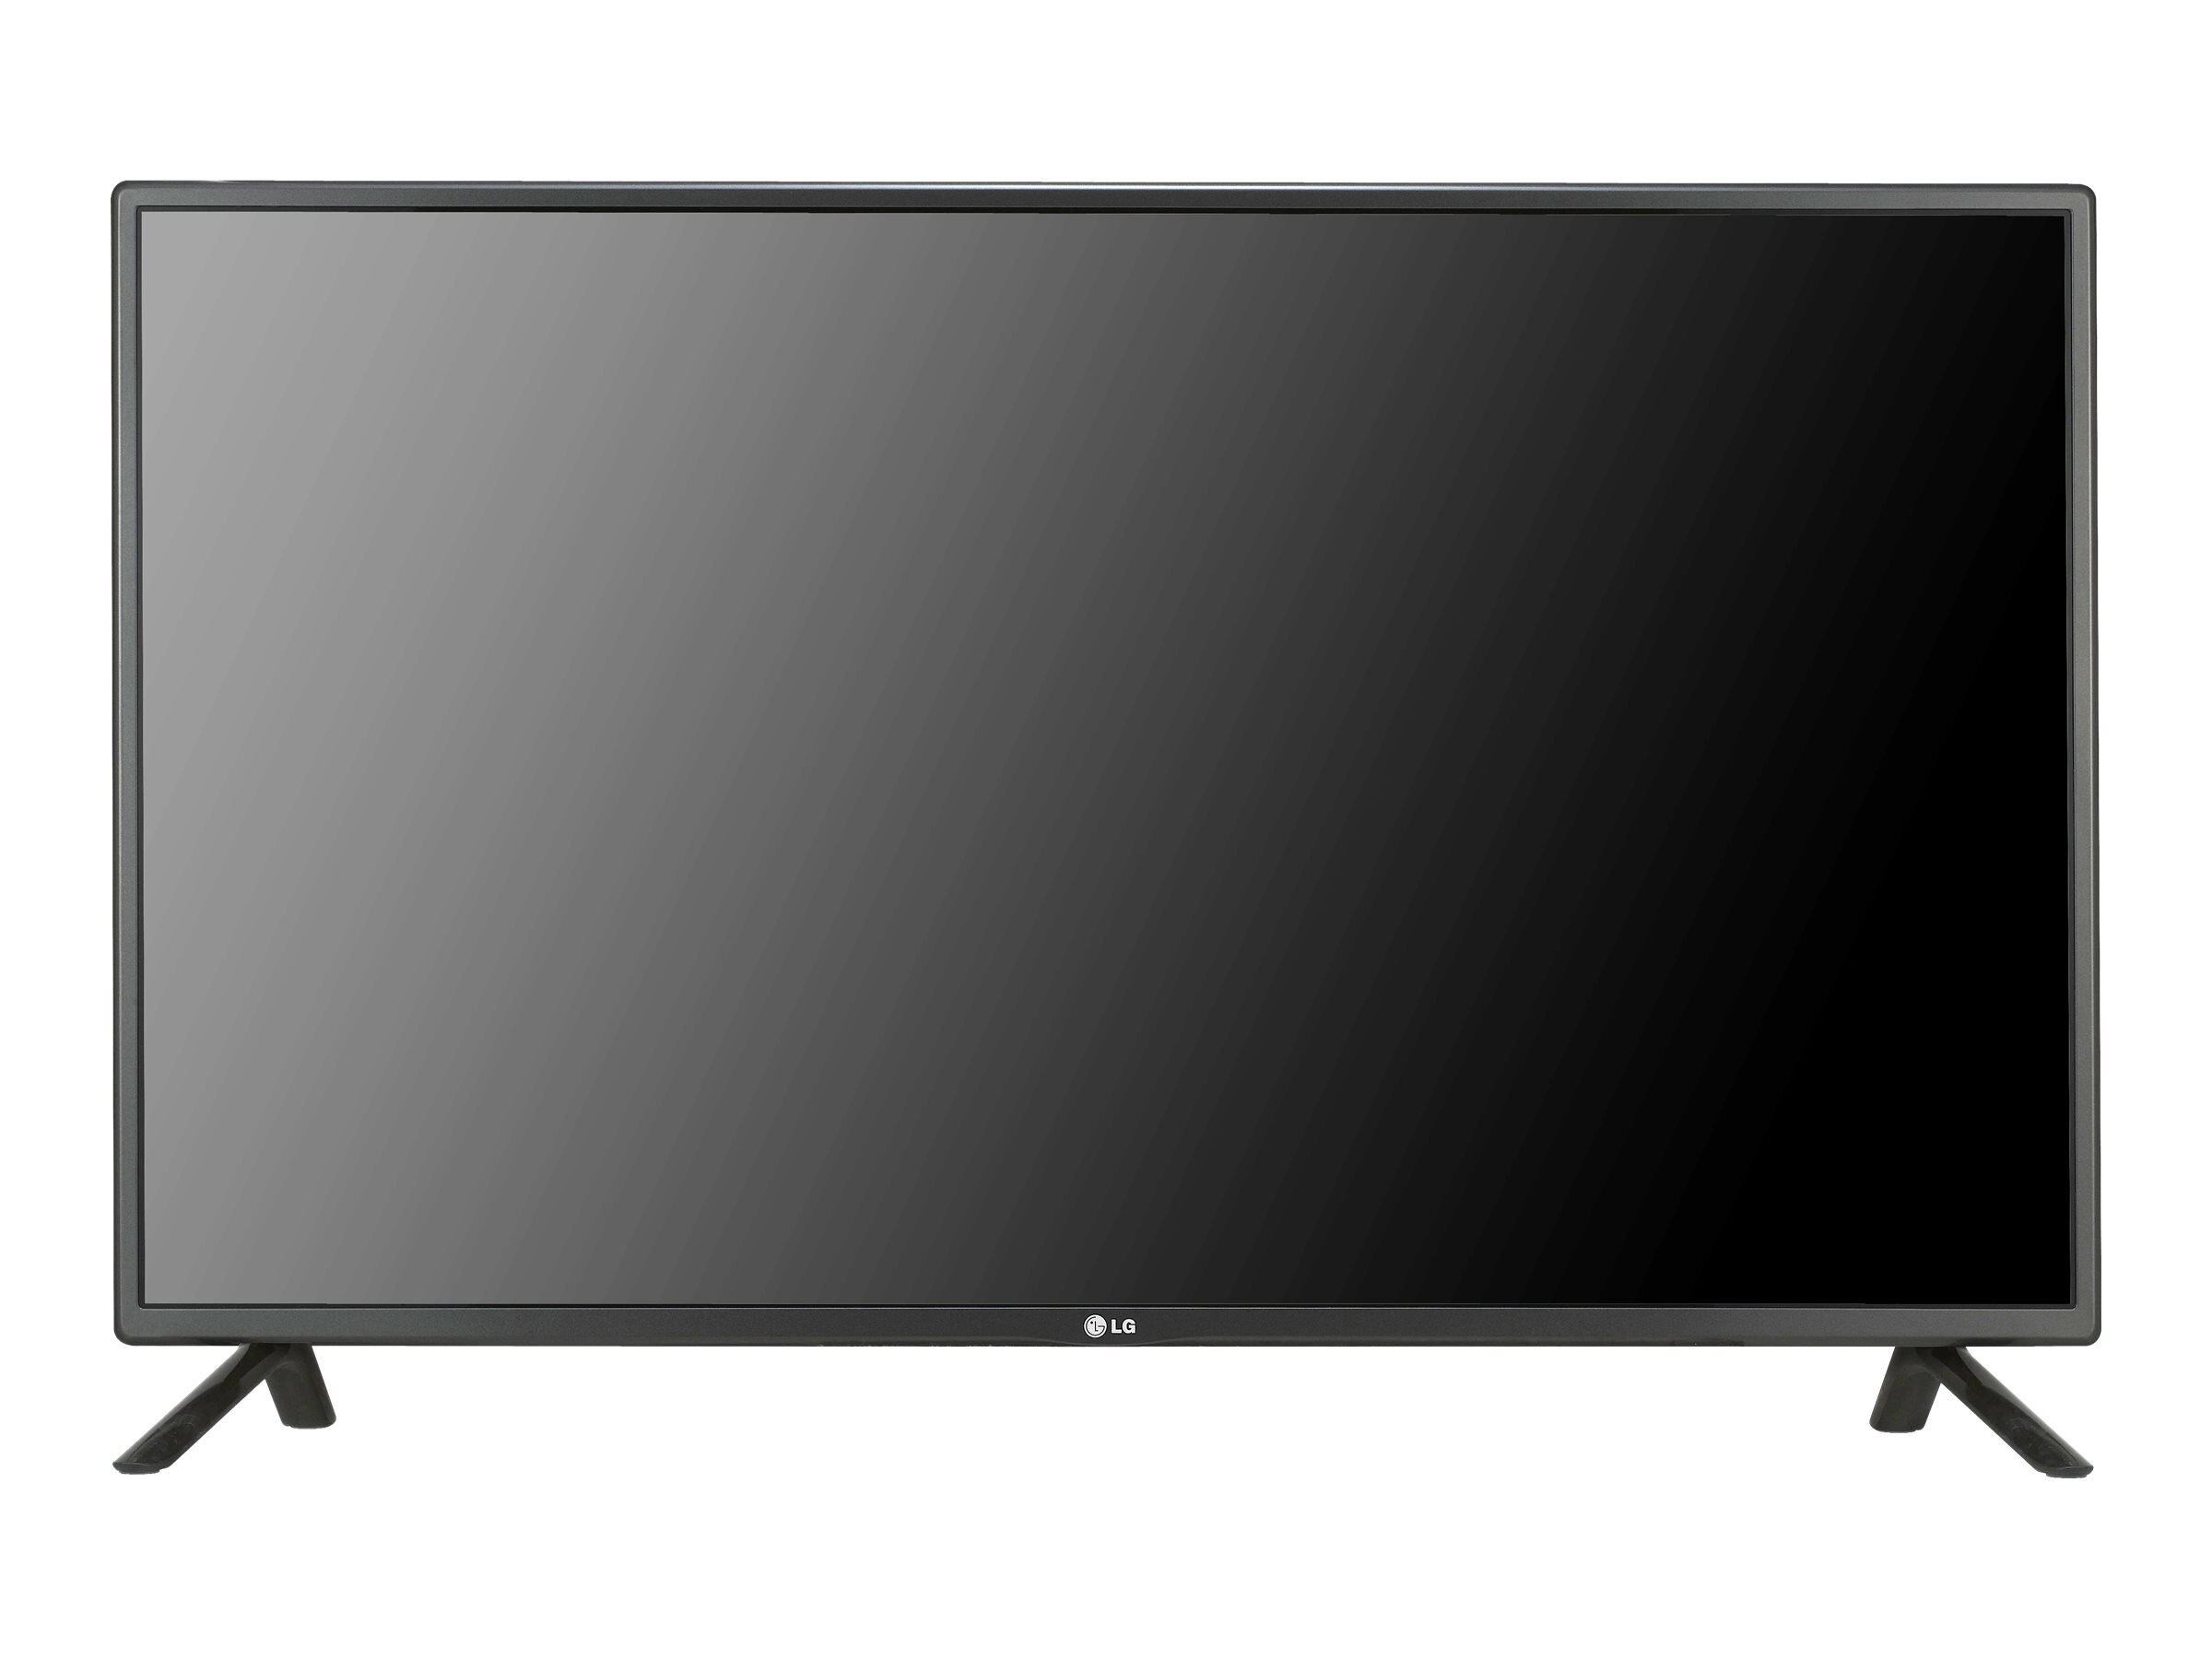 LG 42 LS35A-5B Full HD LED-LCD Display, Black, 42LS35A-5B, 17840250, Monitors - Large-Format LED-LCD